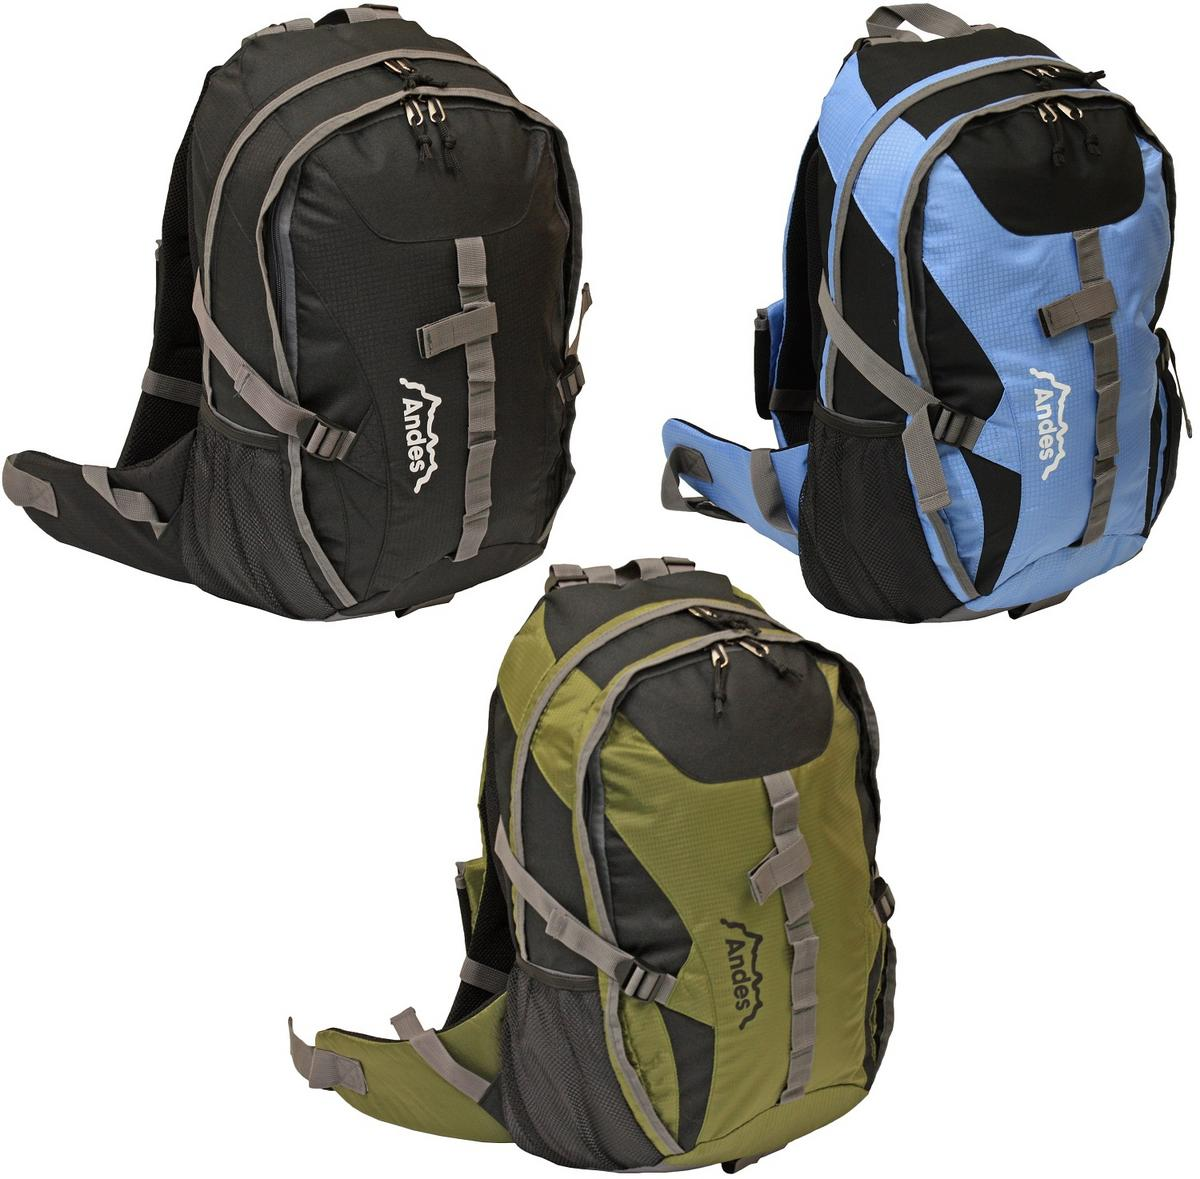 Andes 35 Litre Camping Backpack